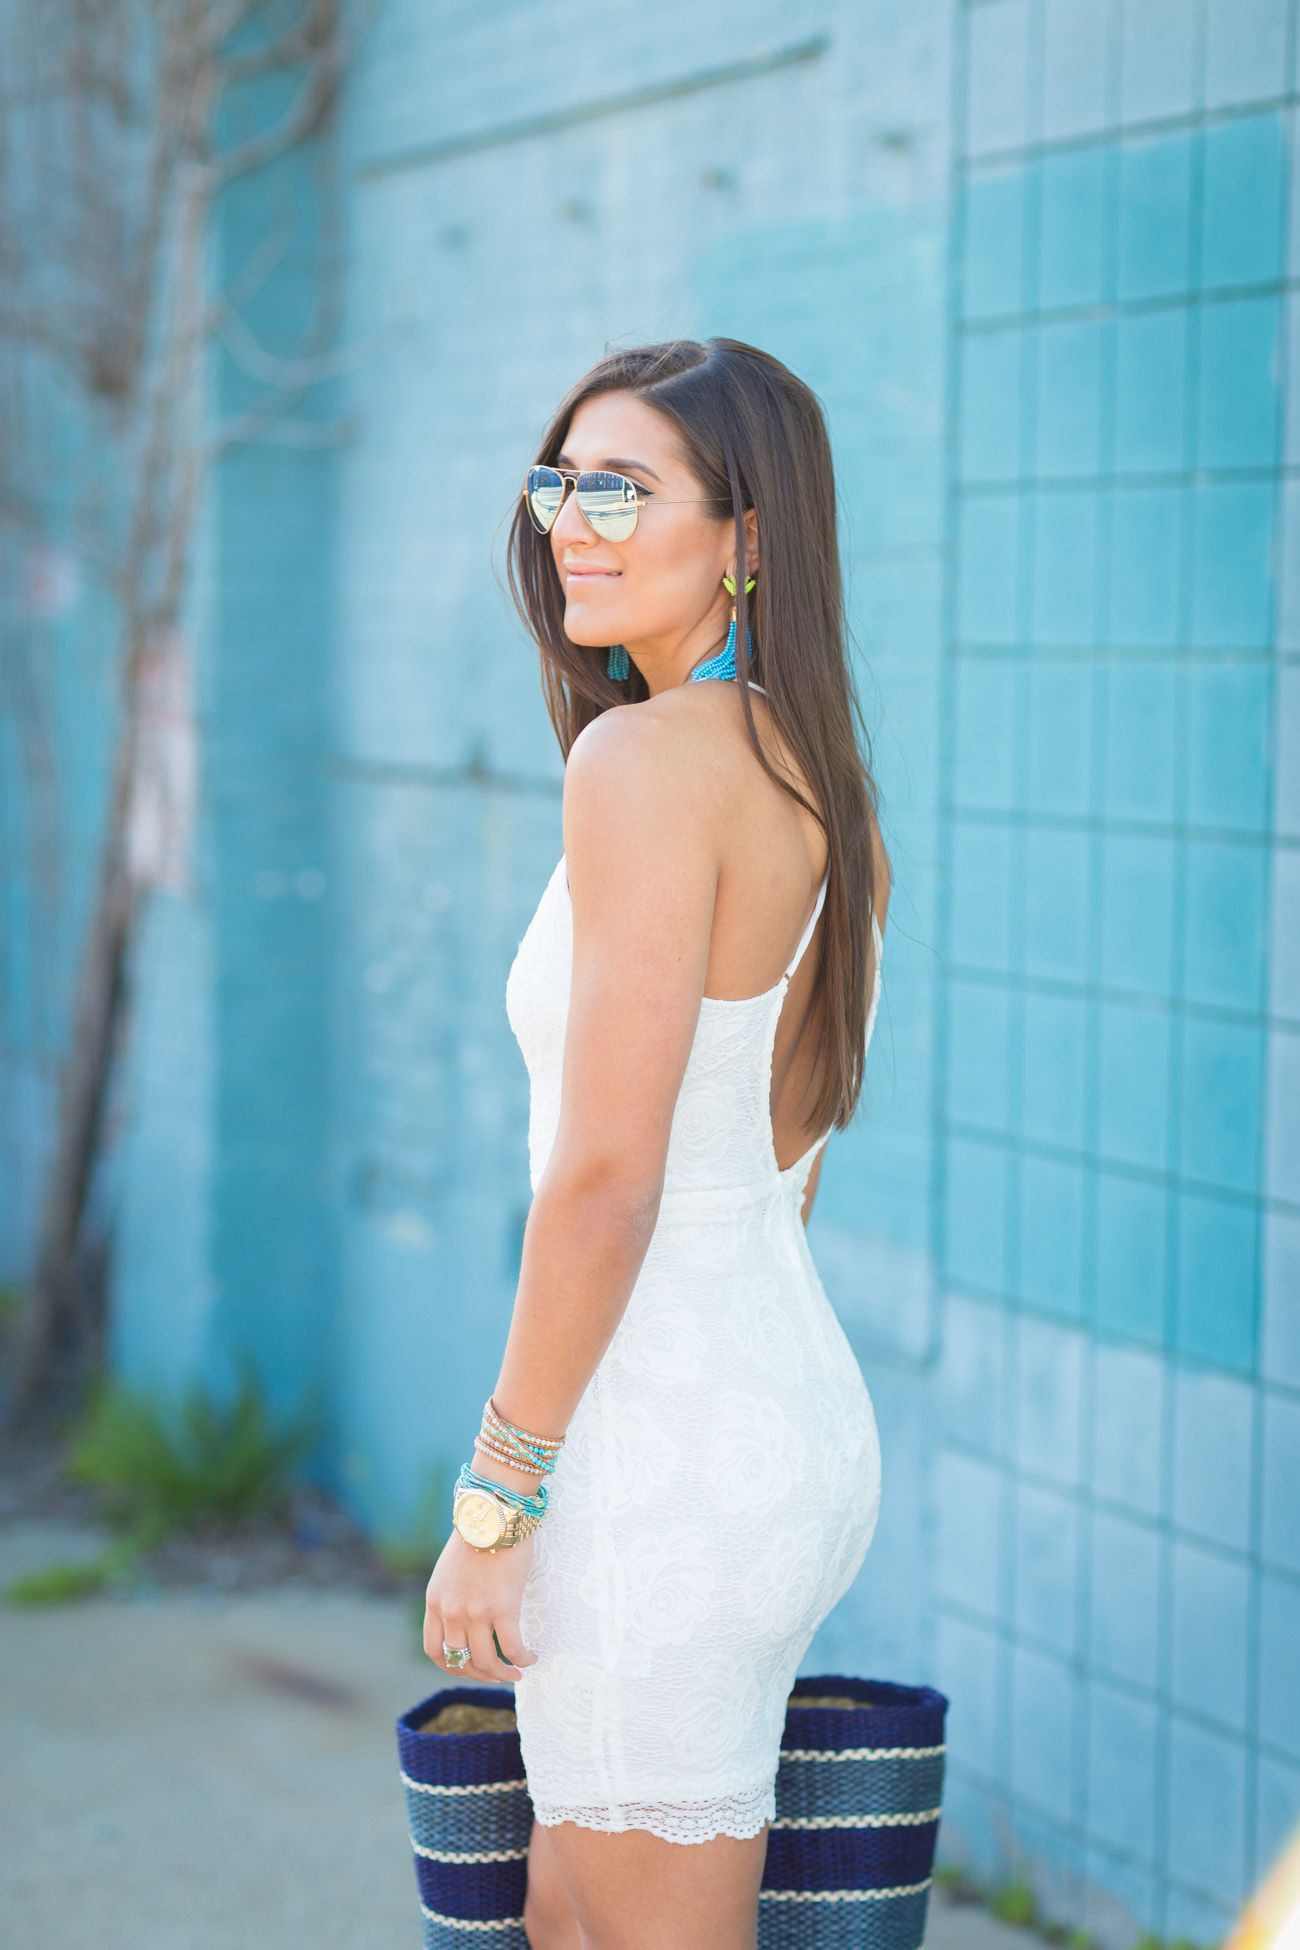 White Lace Dress | Turquoise tassel earrings, Straw tote and Tassel ...